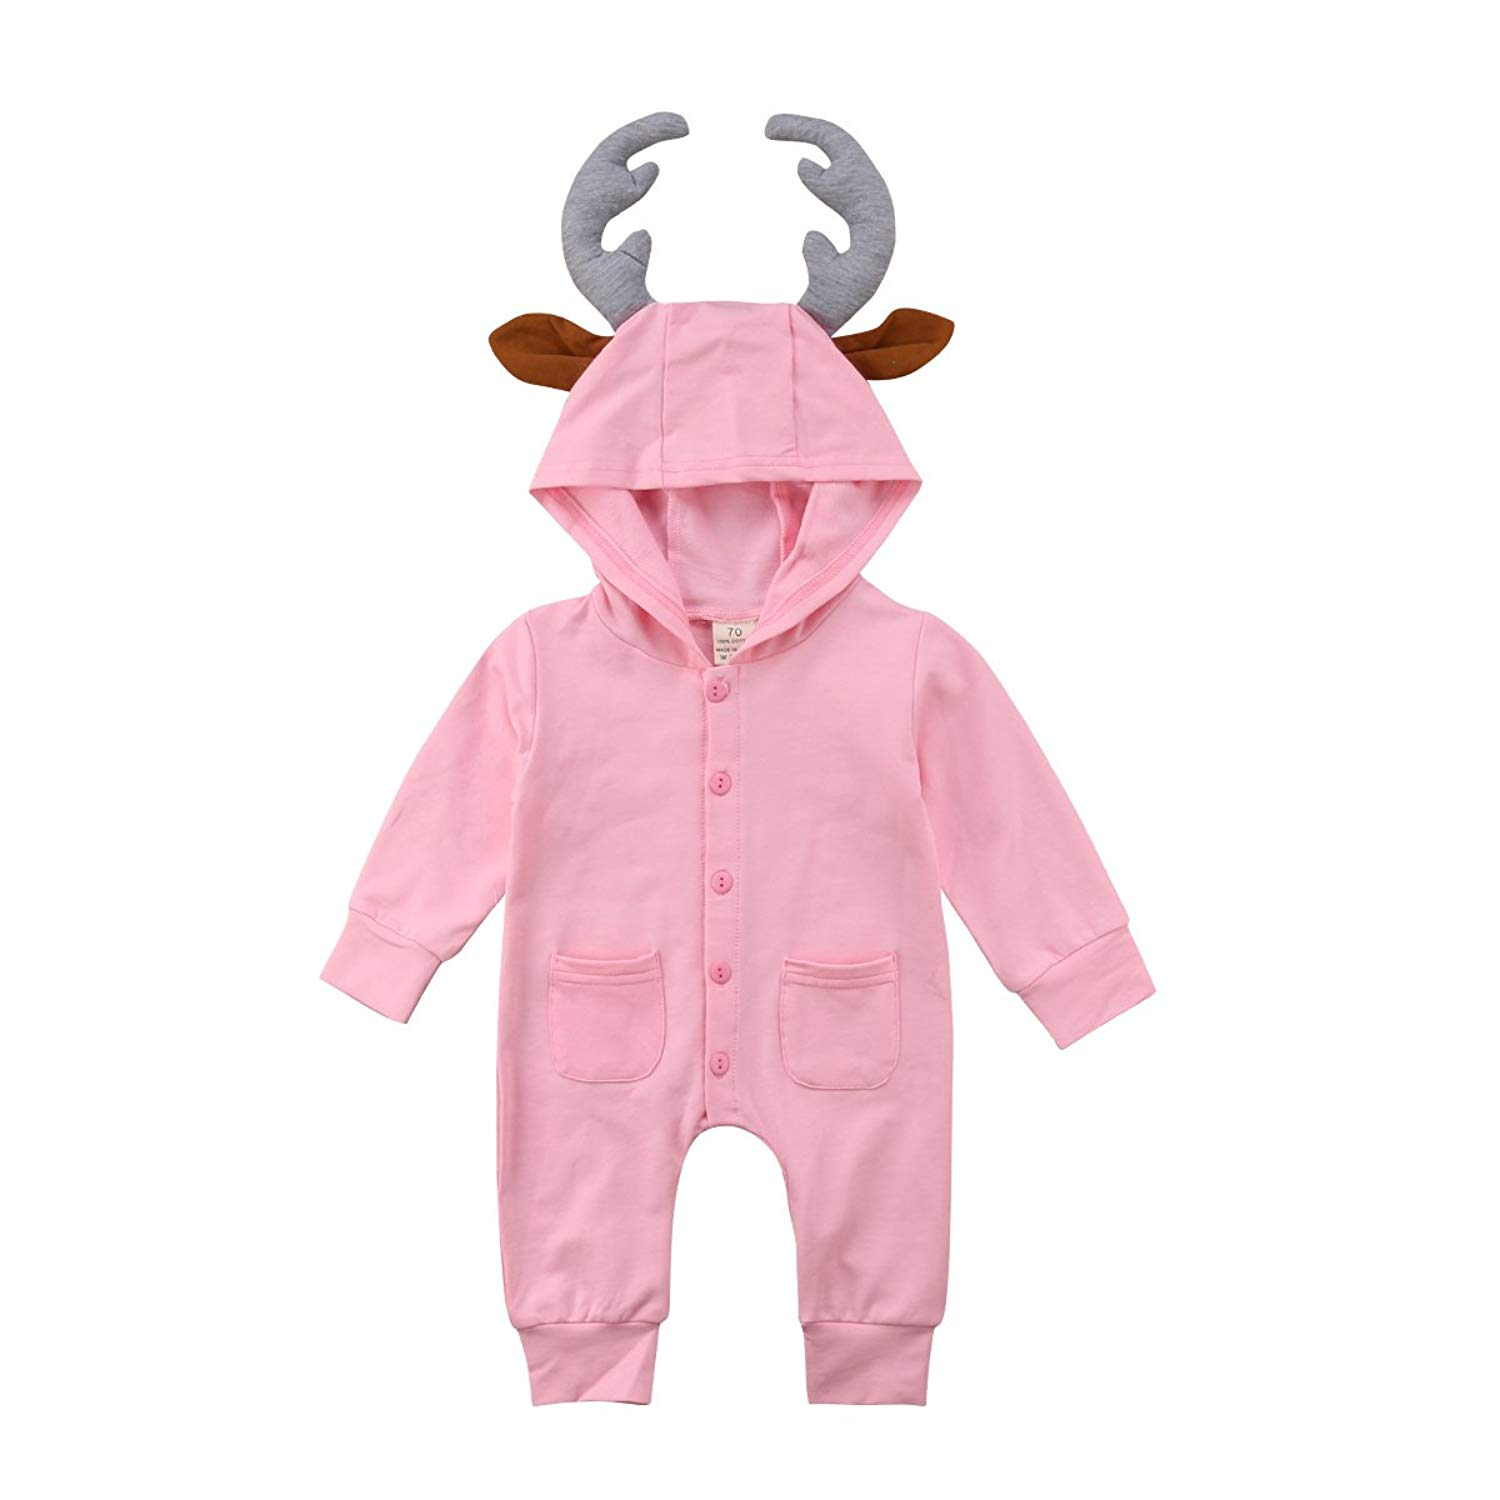 66a5b0c2f Baby Boy Girl Clothes Romper Jumpsuit 3D Deer Antler Bodysuit One-Piece  Footless Jumpsuits Summer Outfit